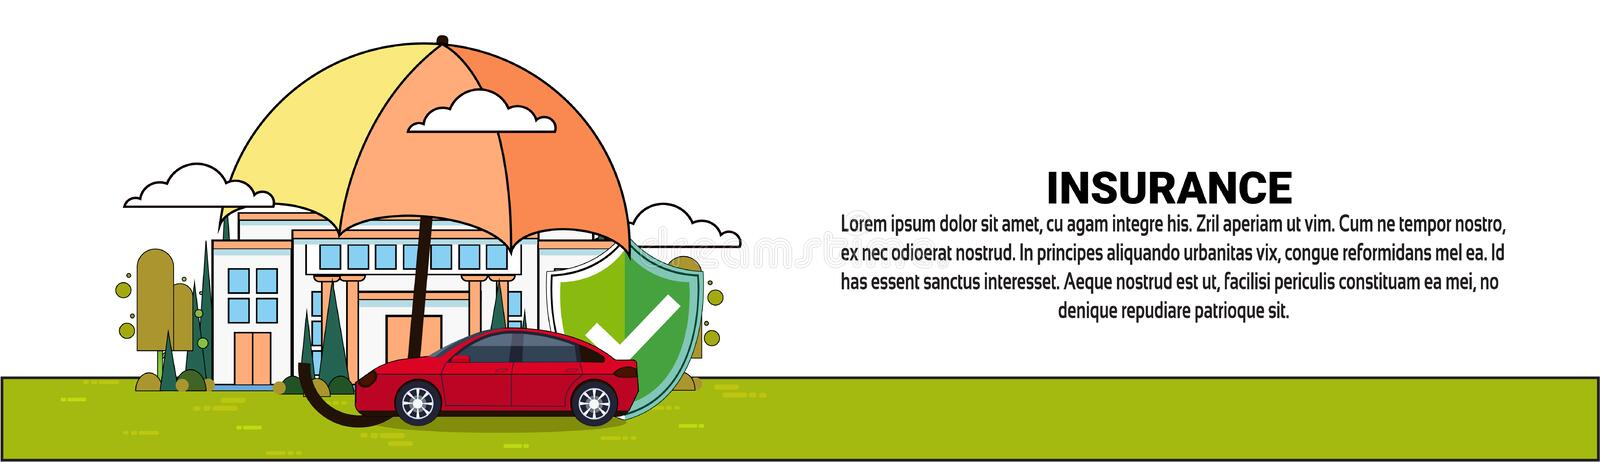 Insurance Banner With Home And Car Property Protection And Safety Service. Vector Illustration vector illustration